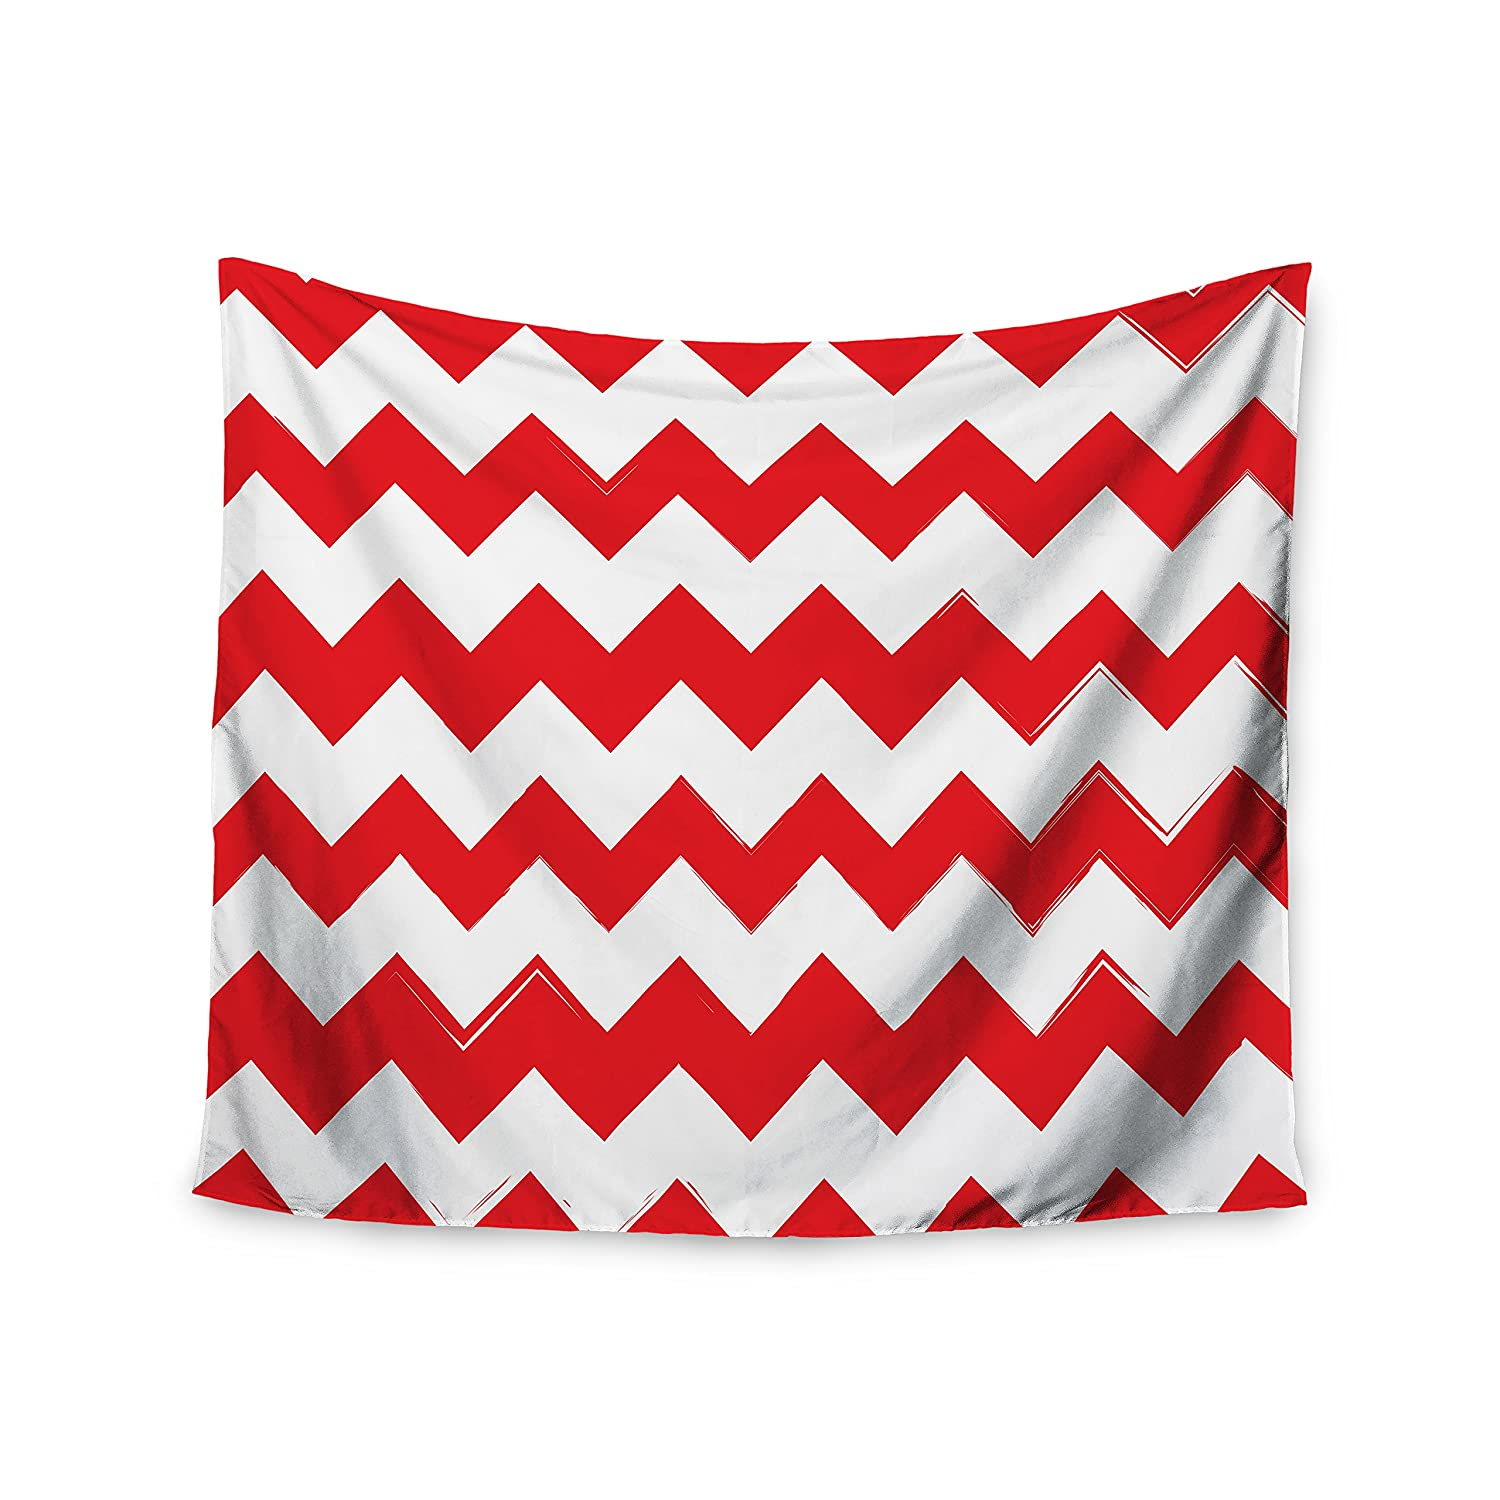 Kess InHouse Kess Original Candy Cane Red Chevron Wall Tapestry 51 X 60